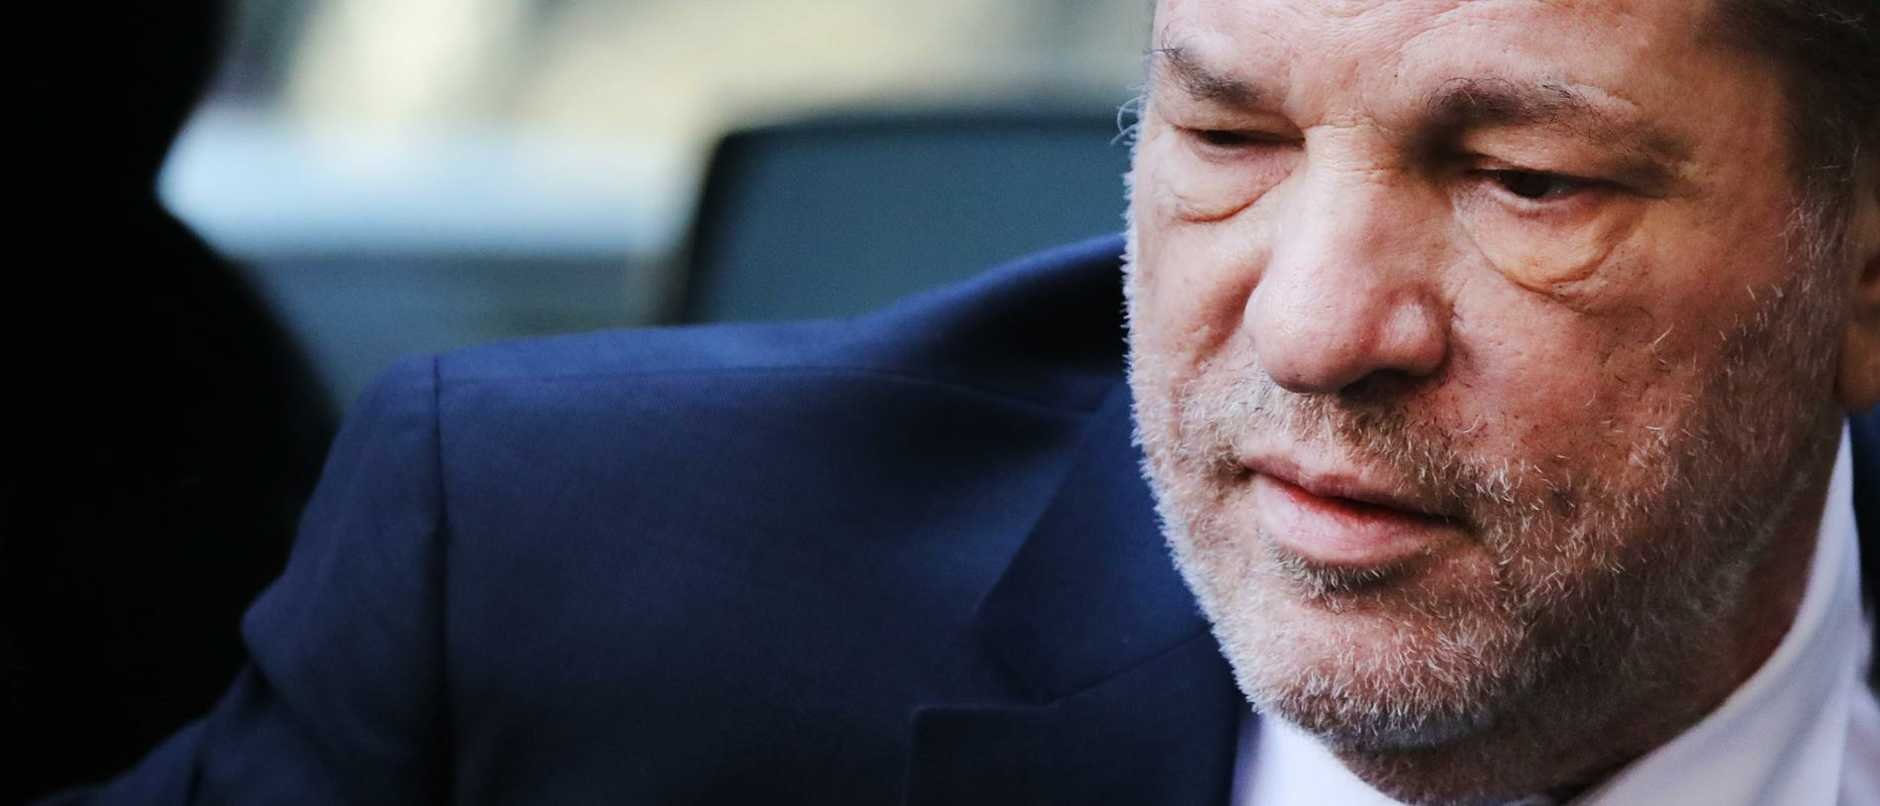 Many people have noted how Harvey Weinstein's health issues were brought to light as his trial progressed.